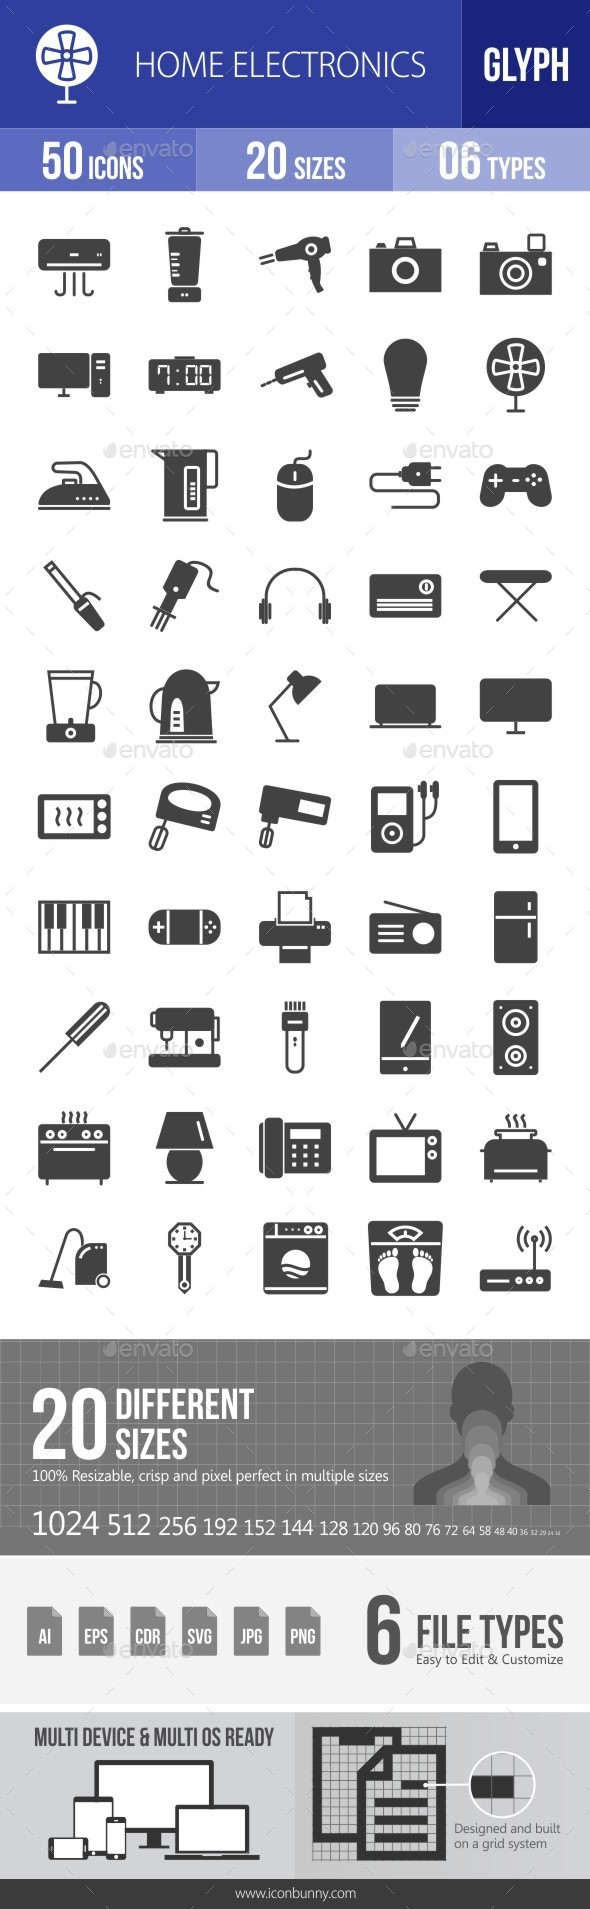 Home Electronics Glyph Icons - Icons